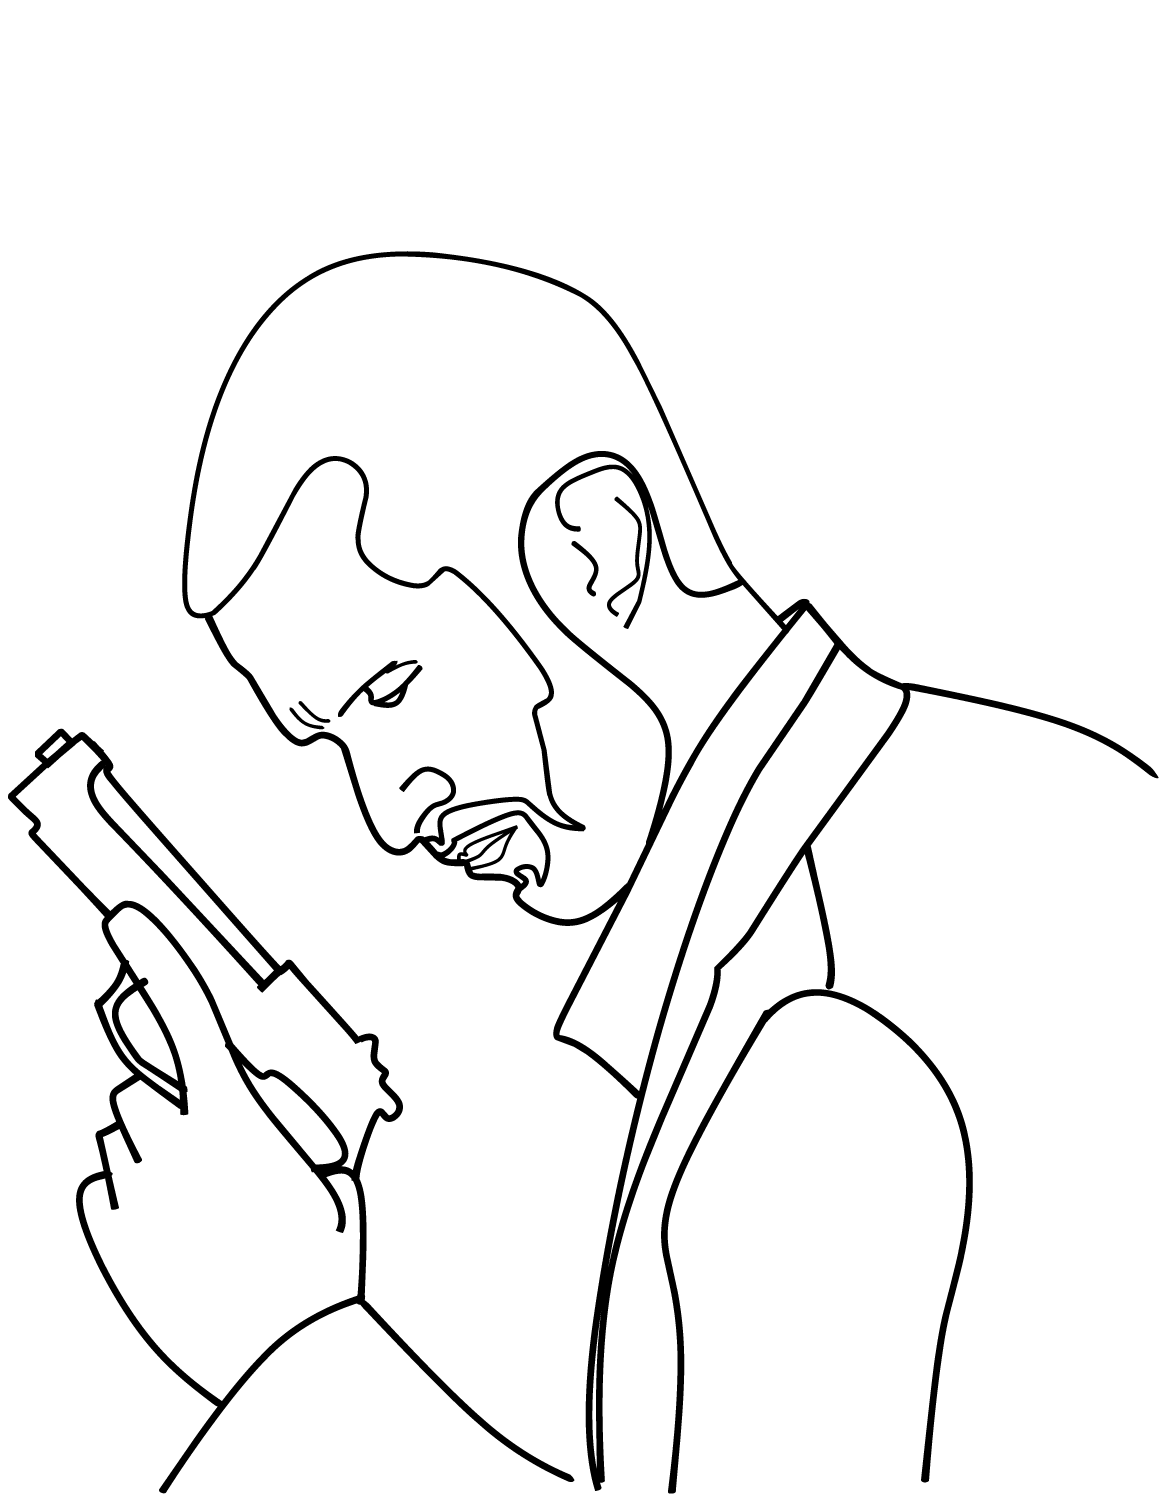 police detective coloring pages